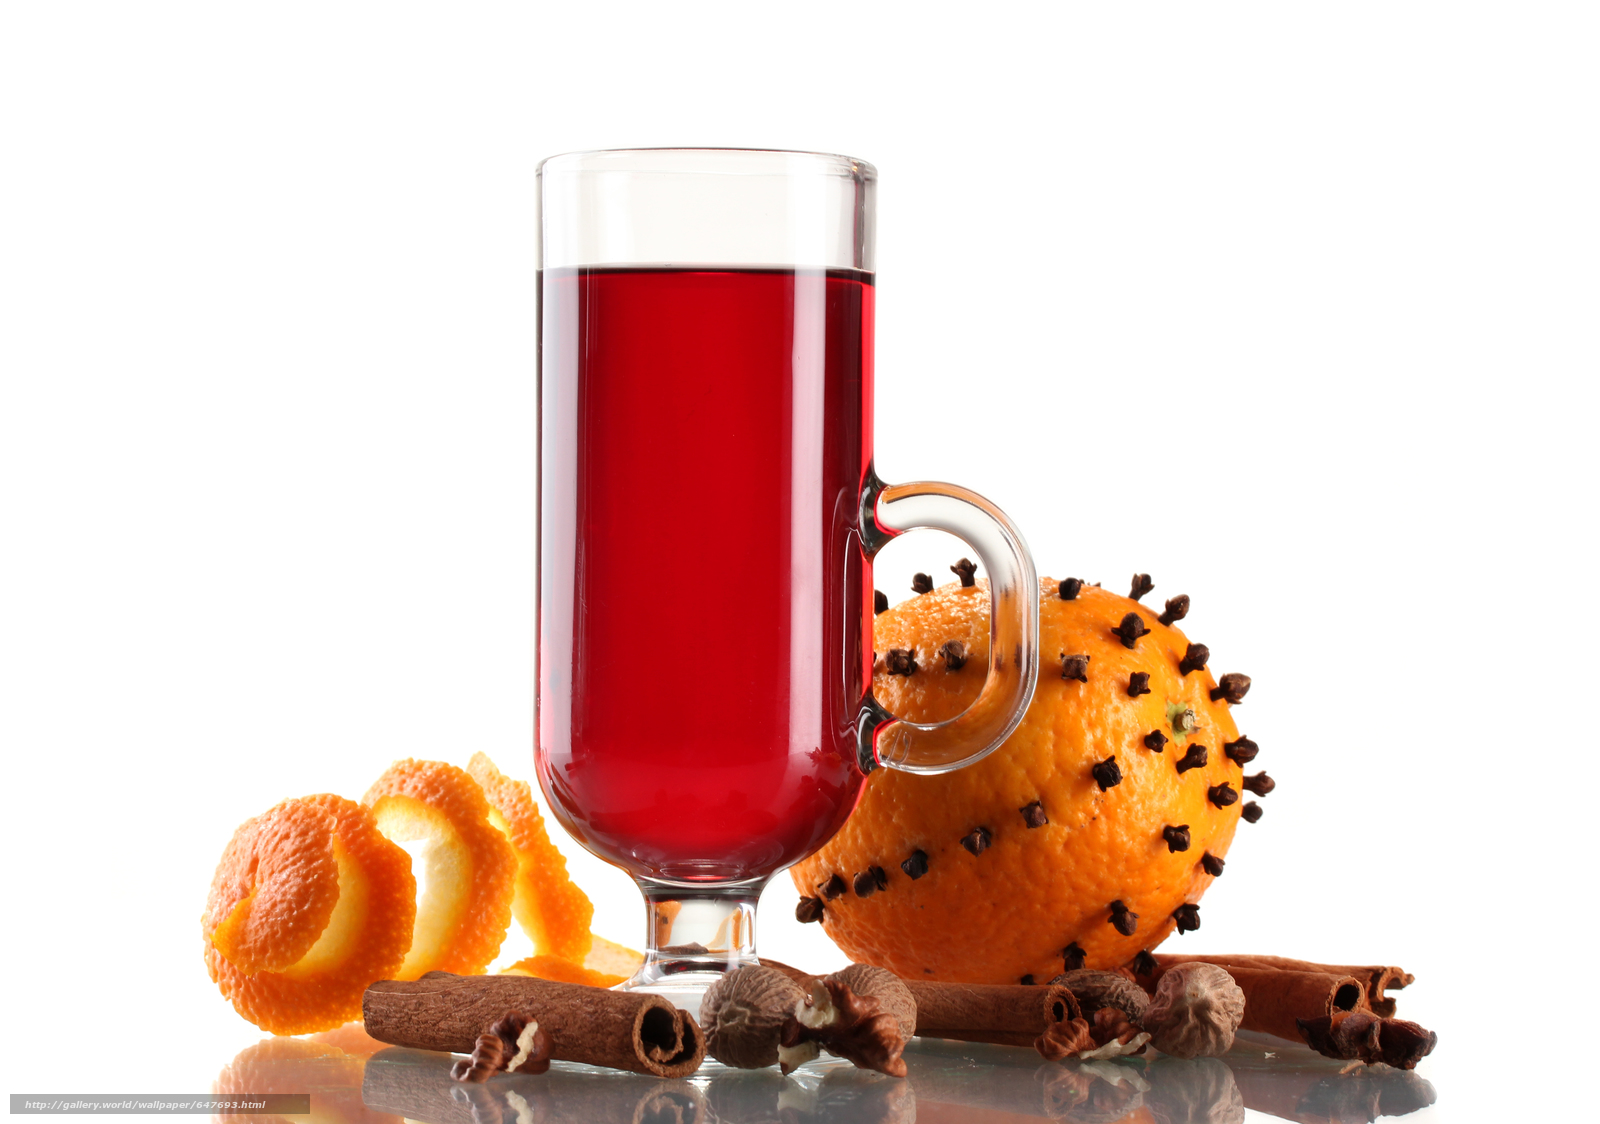 Download wallpaper Mulled Wine with Spices,  orange,  cocktail free desktop wallpaper in the resolution 4828x3392 — picture №647693